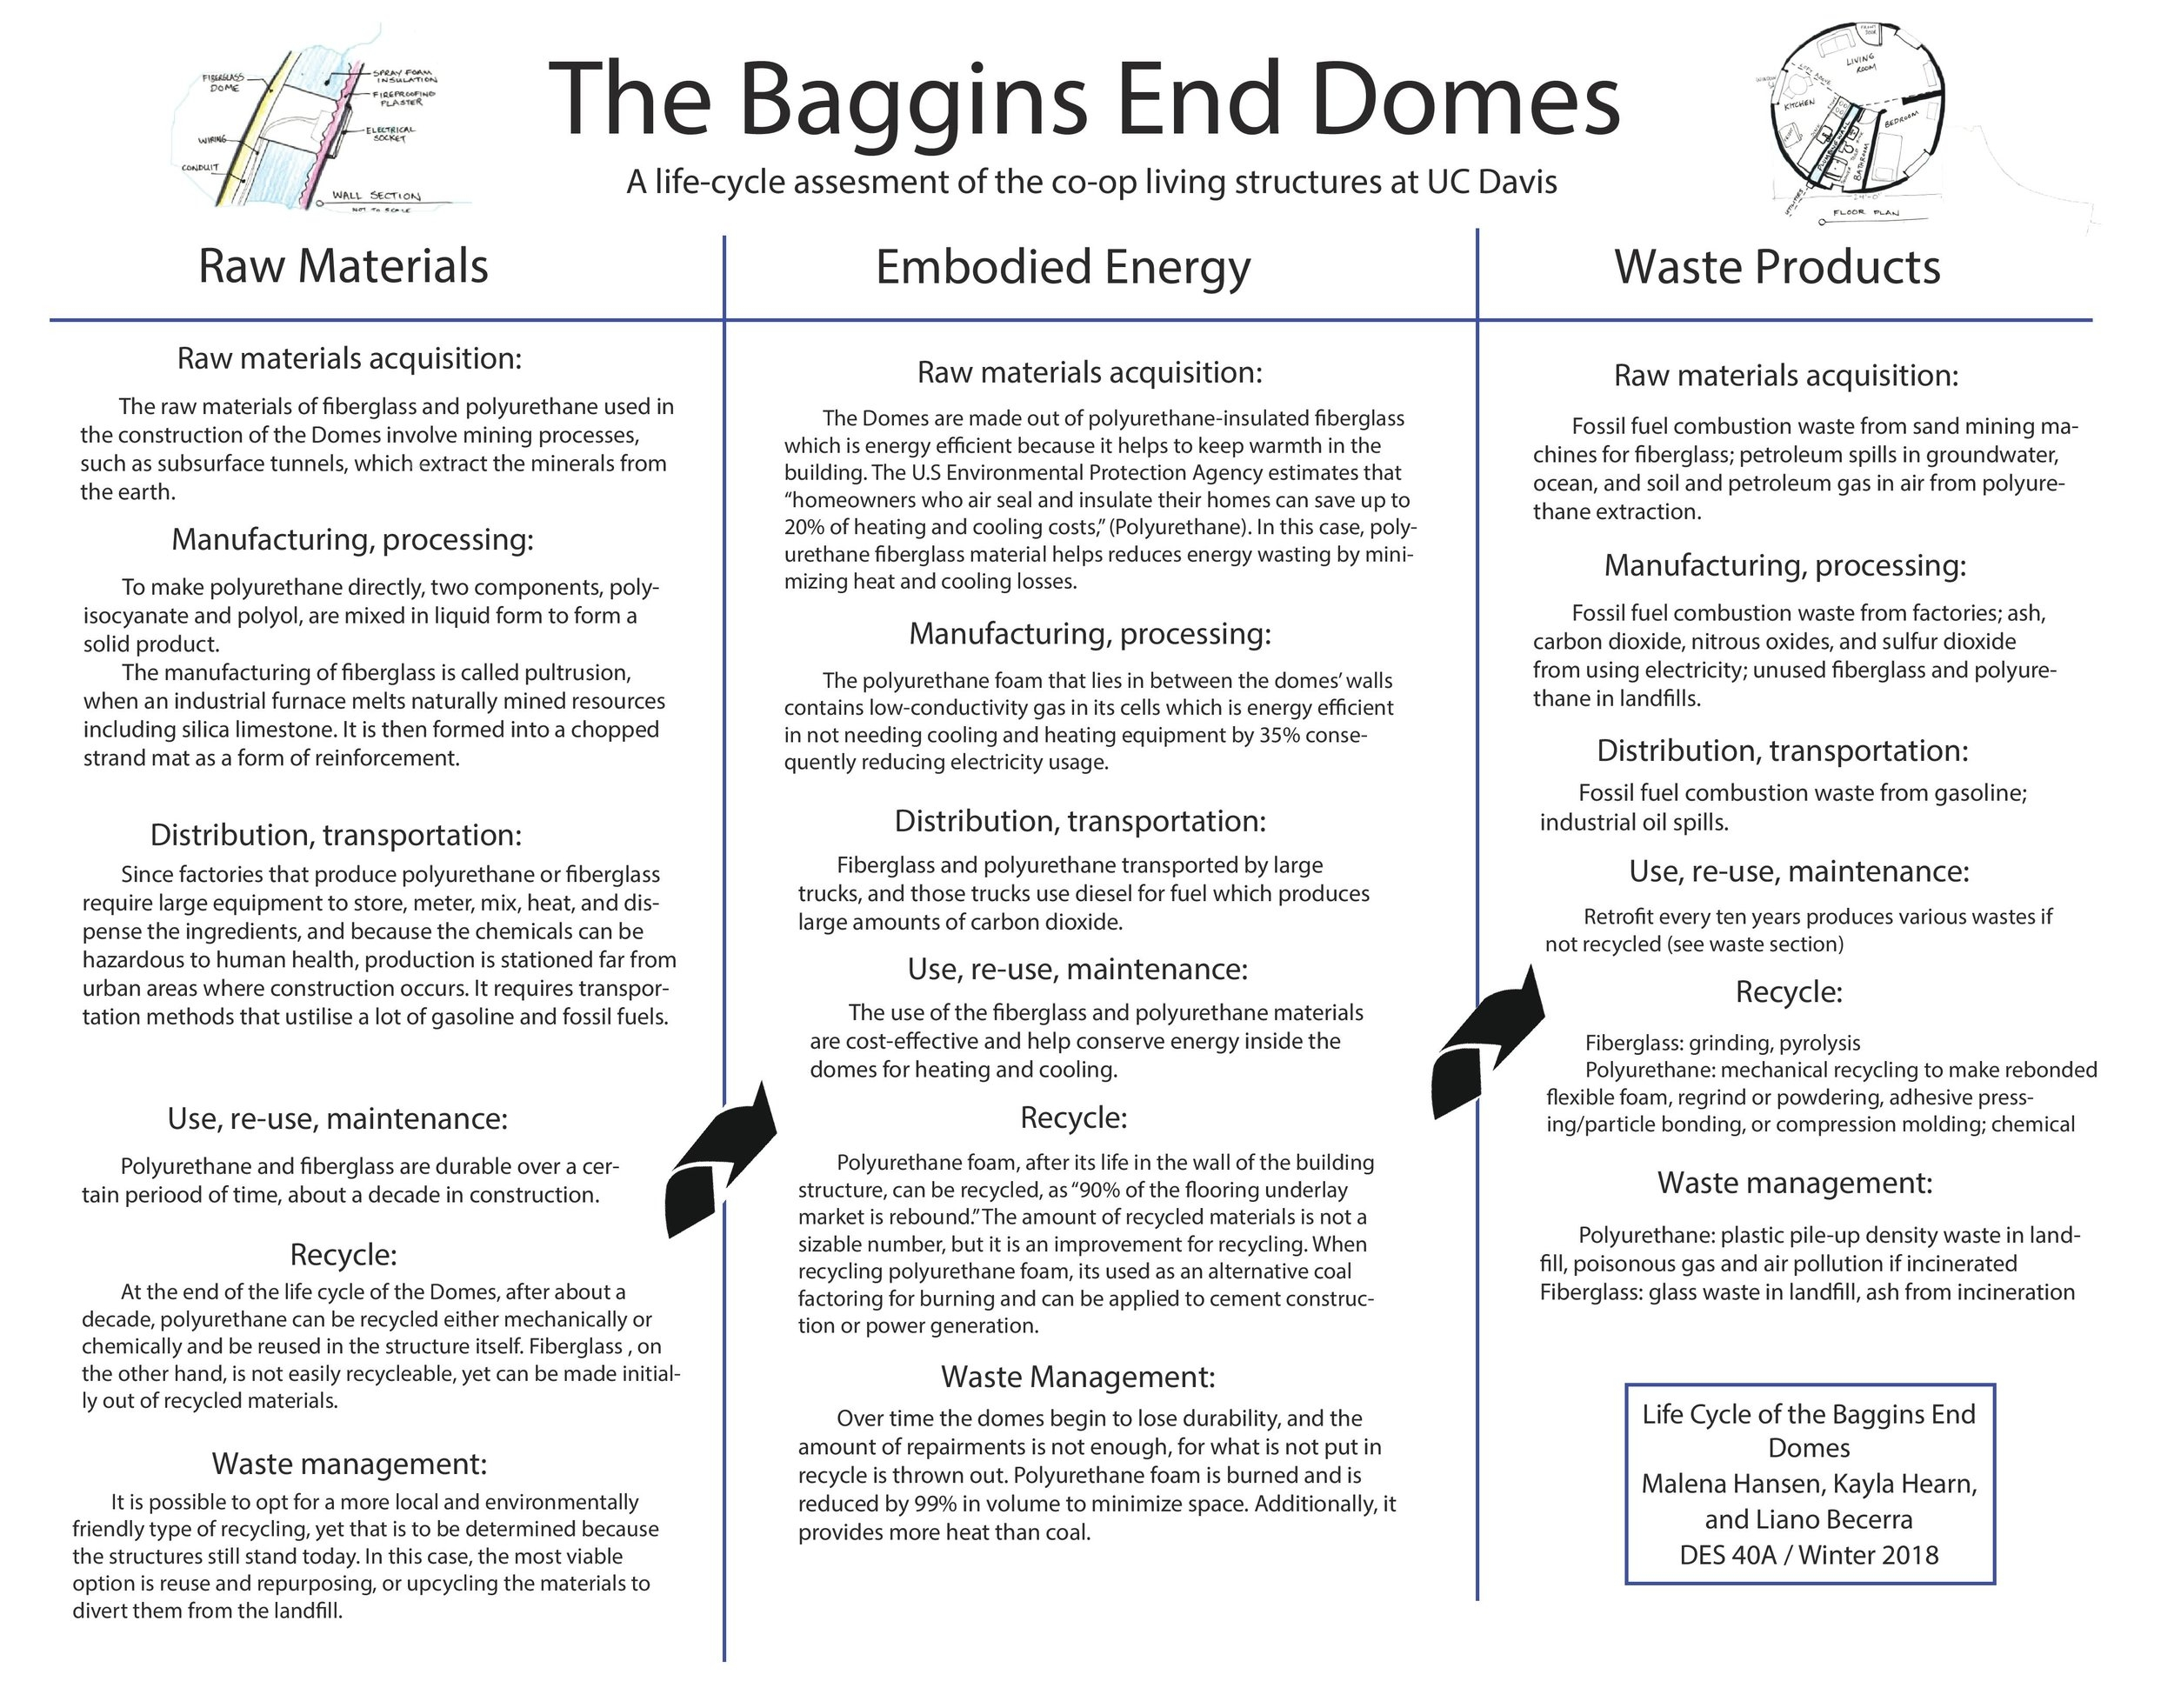 The Baggins End Domes